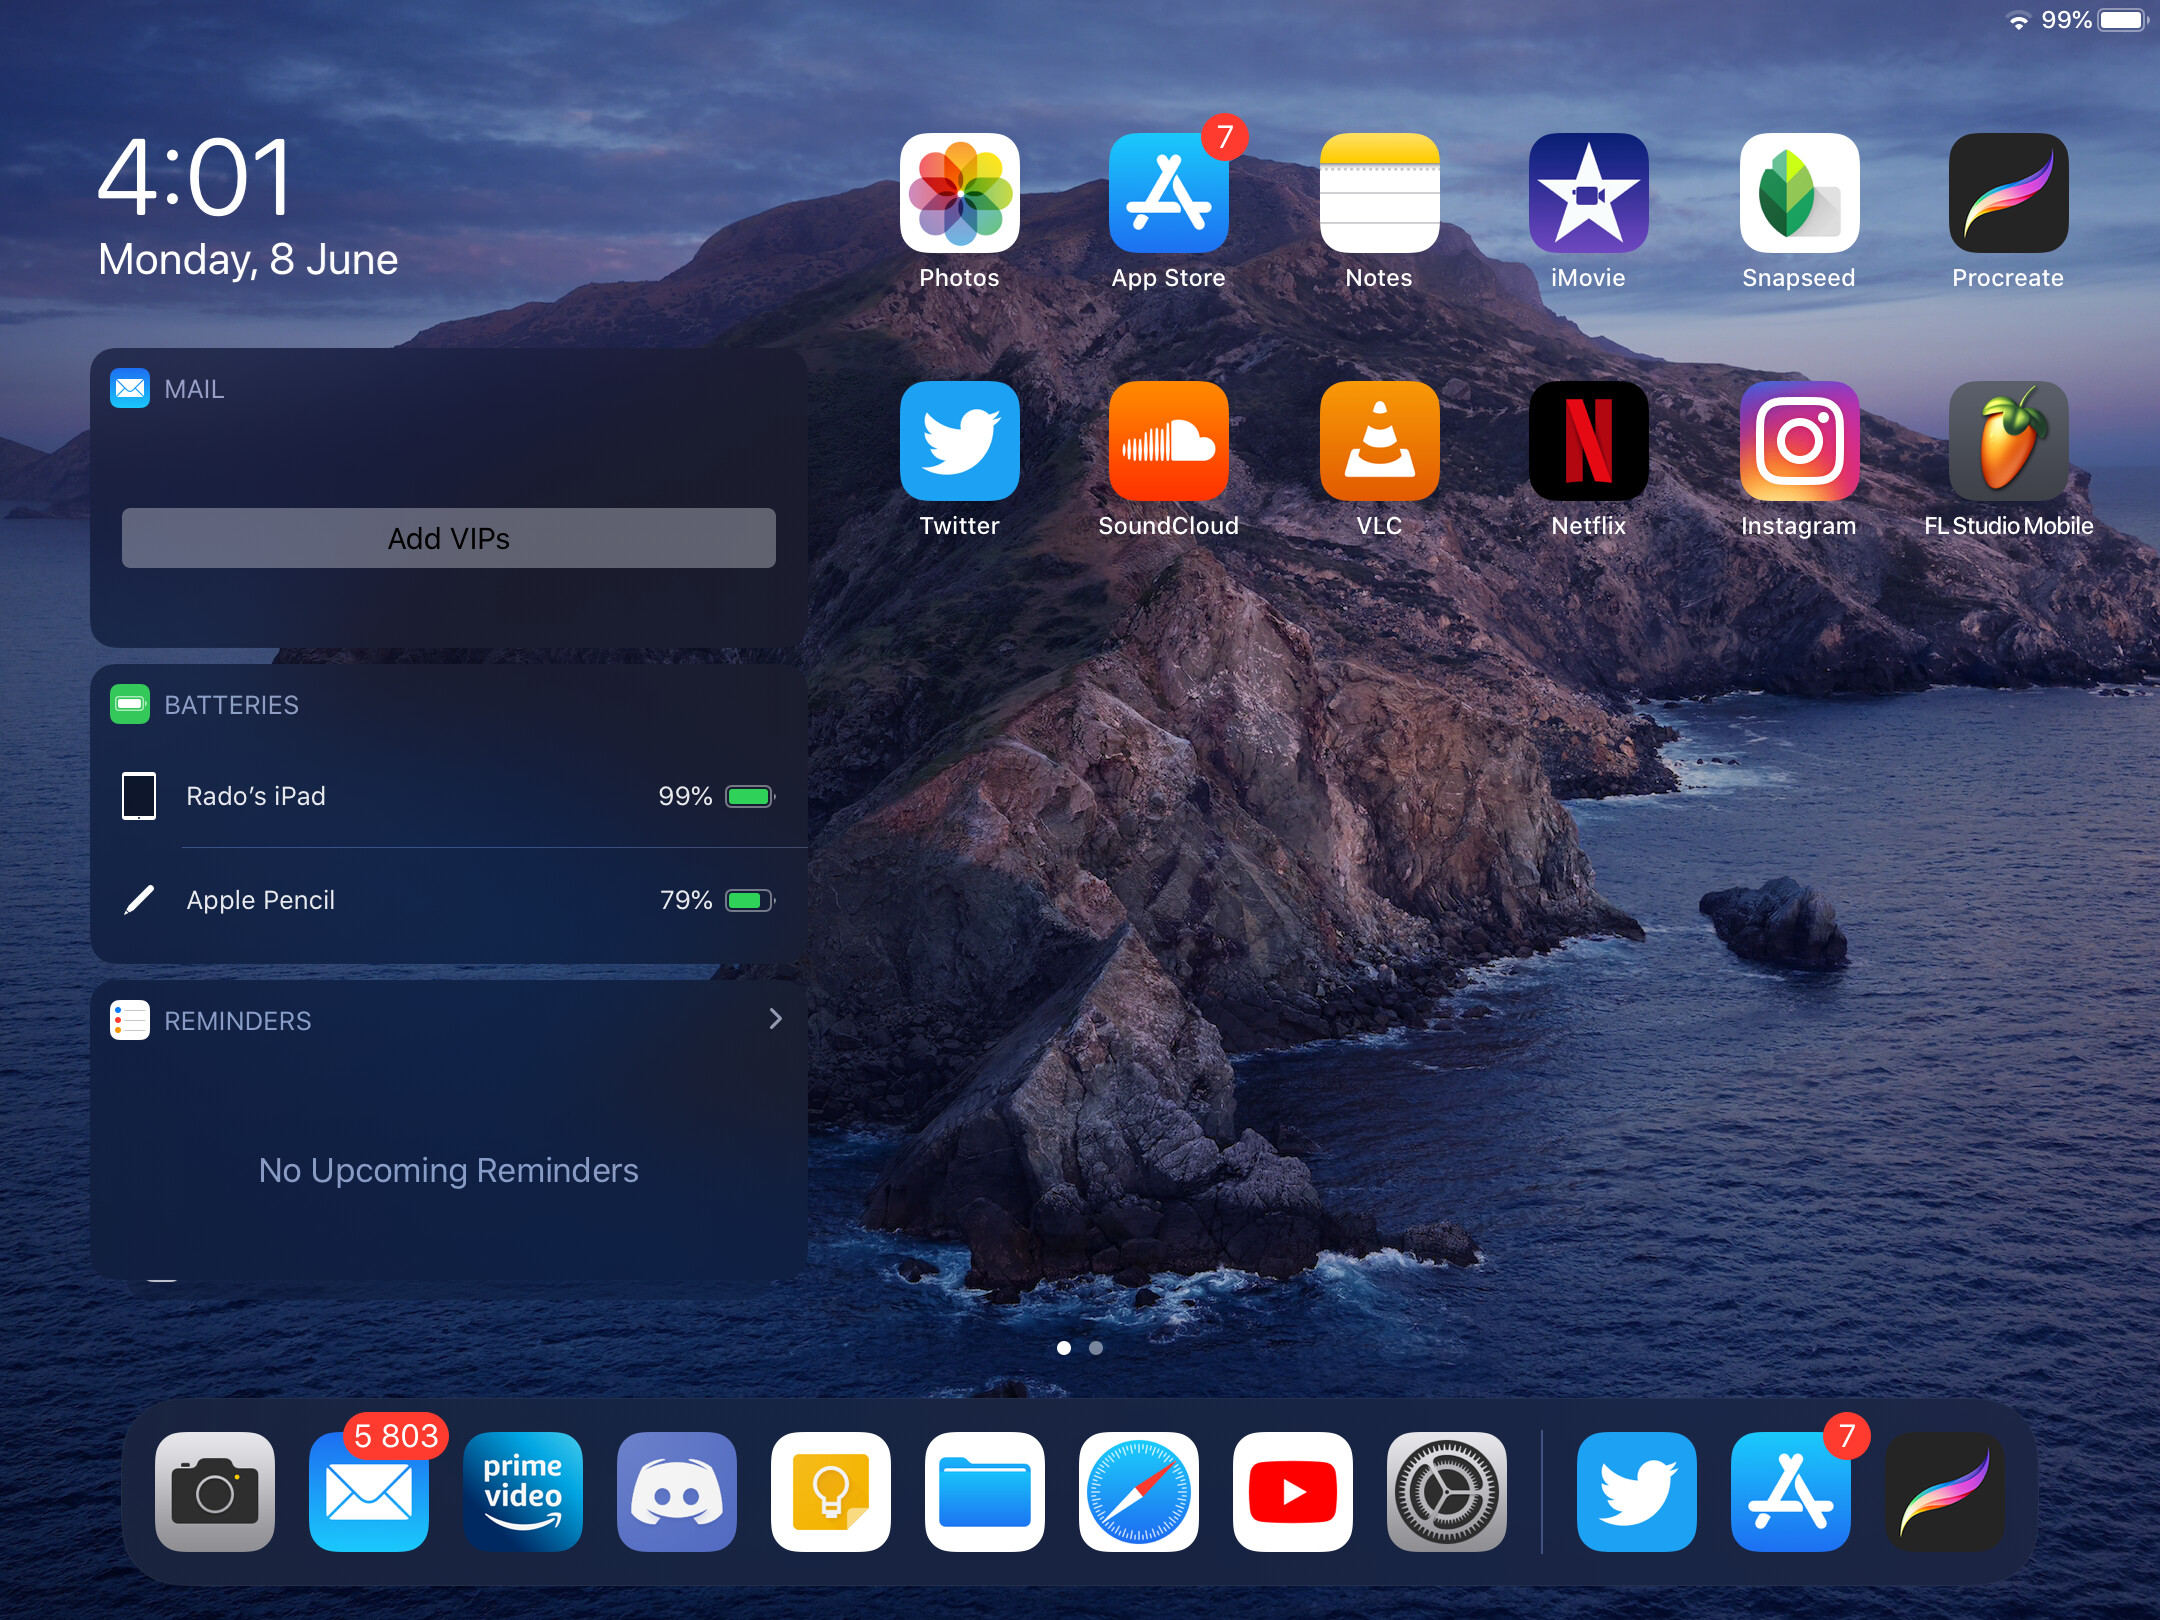 Today View is a home screen panel containing widgets, that is only available on iPad. - This is what iPadOS needs before the iPad can truly replace a computer